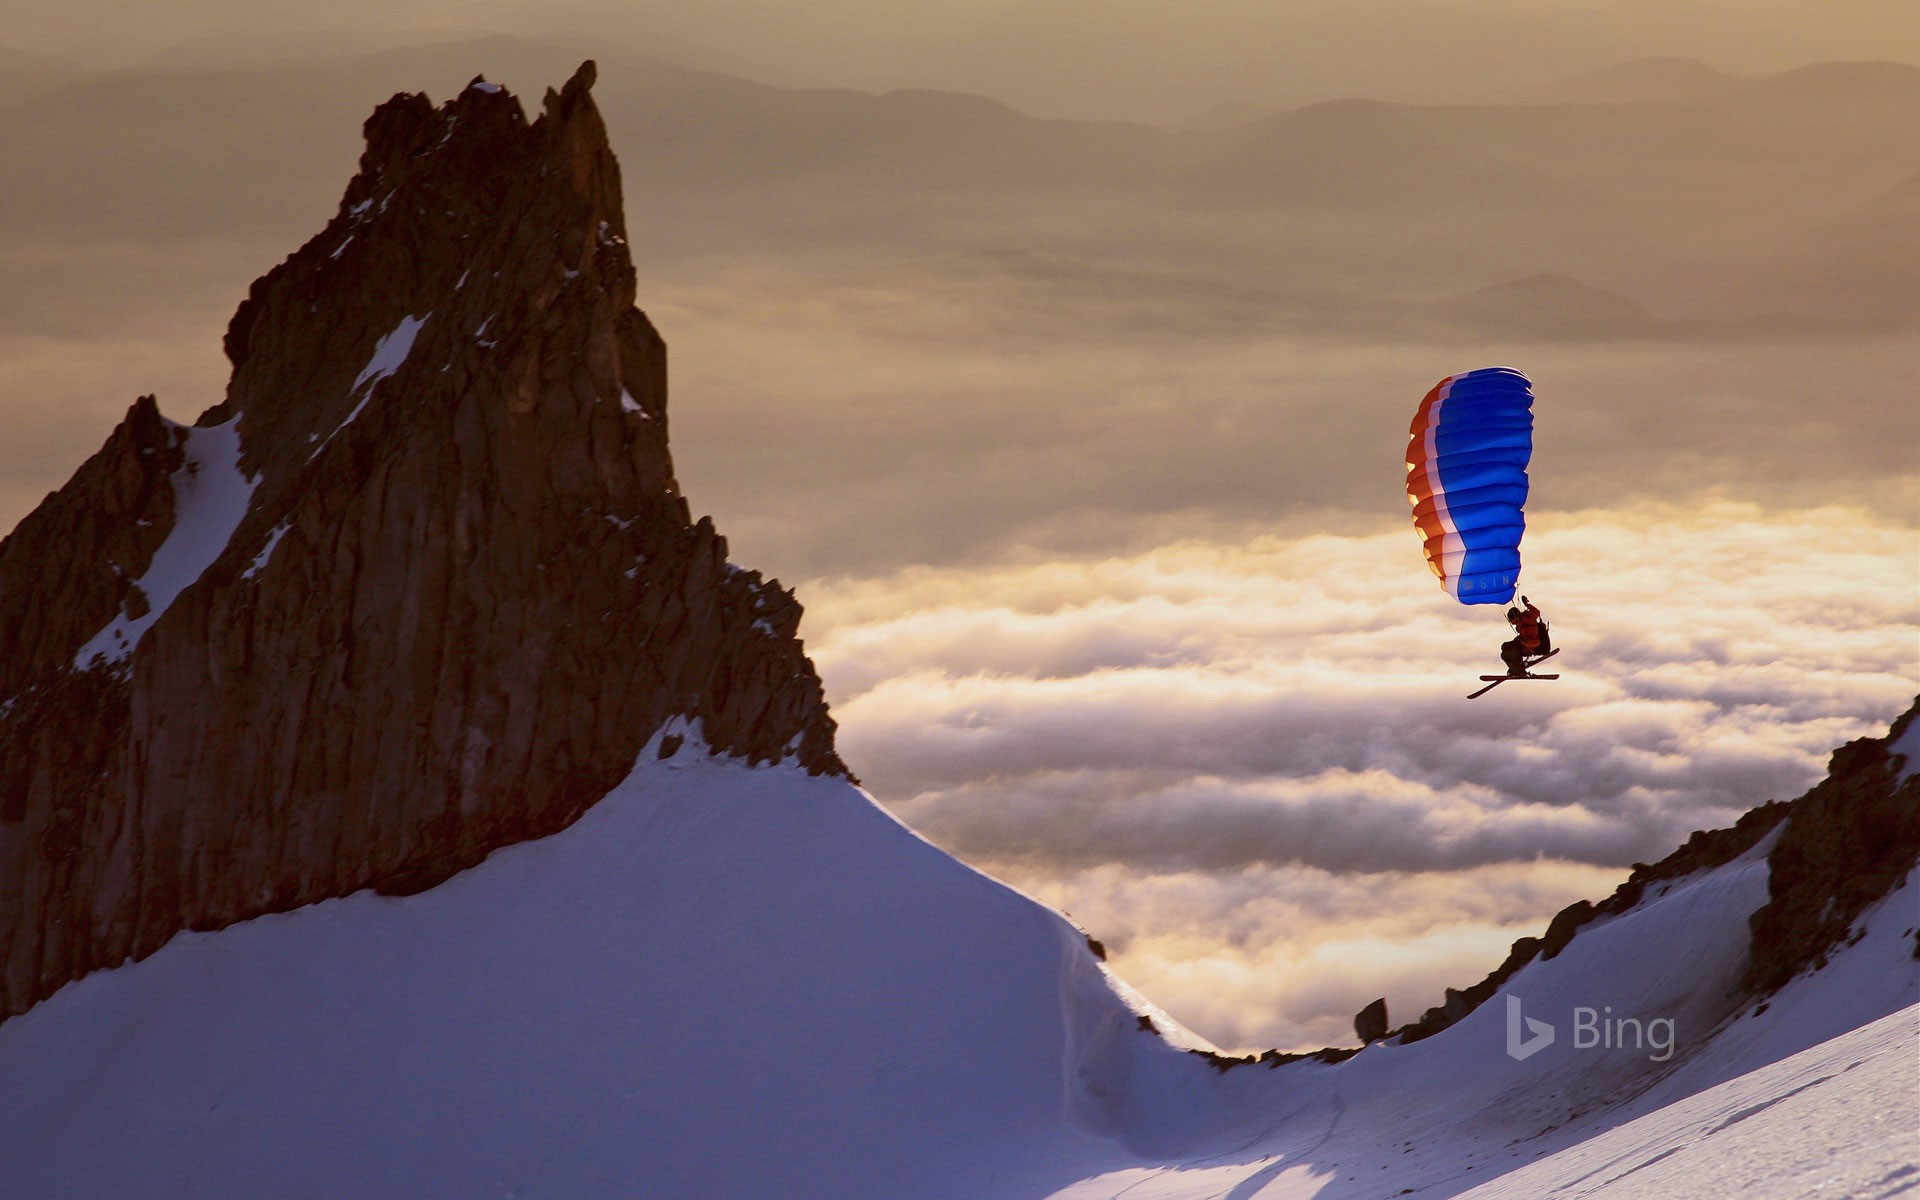 Backcountry adventurer Alex Peterson speed riding on the south side of Mount Hood, Oregon